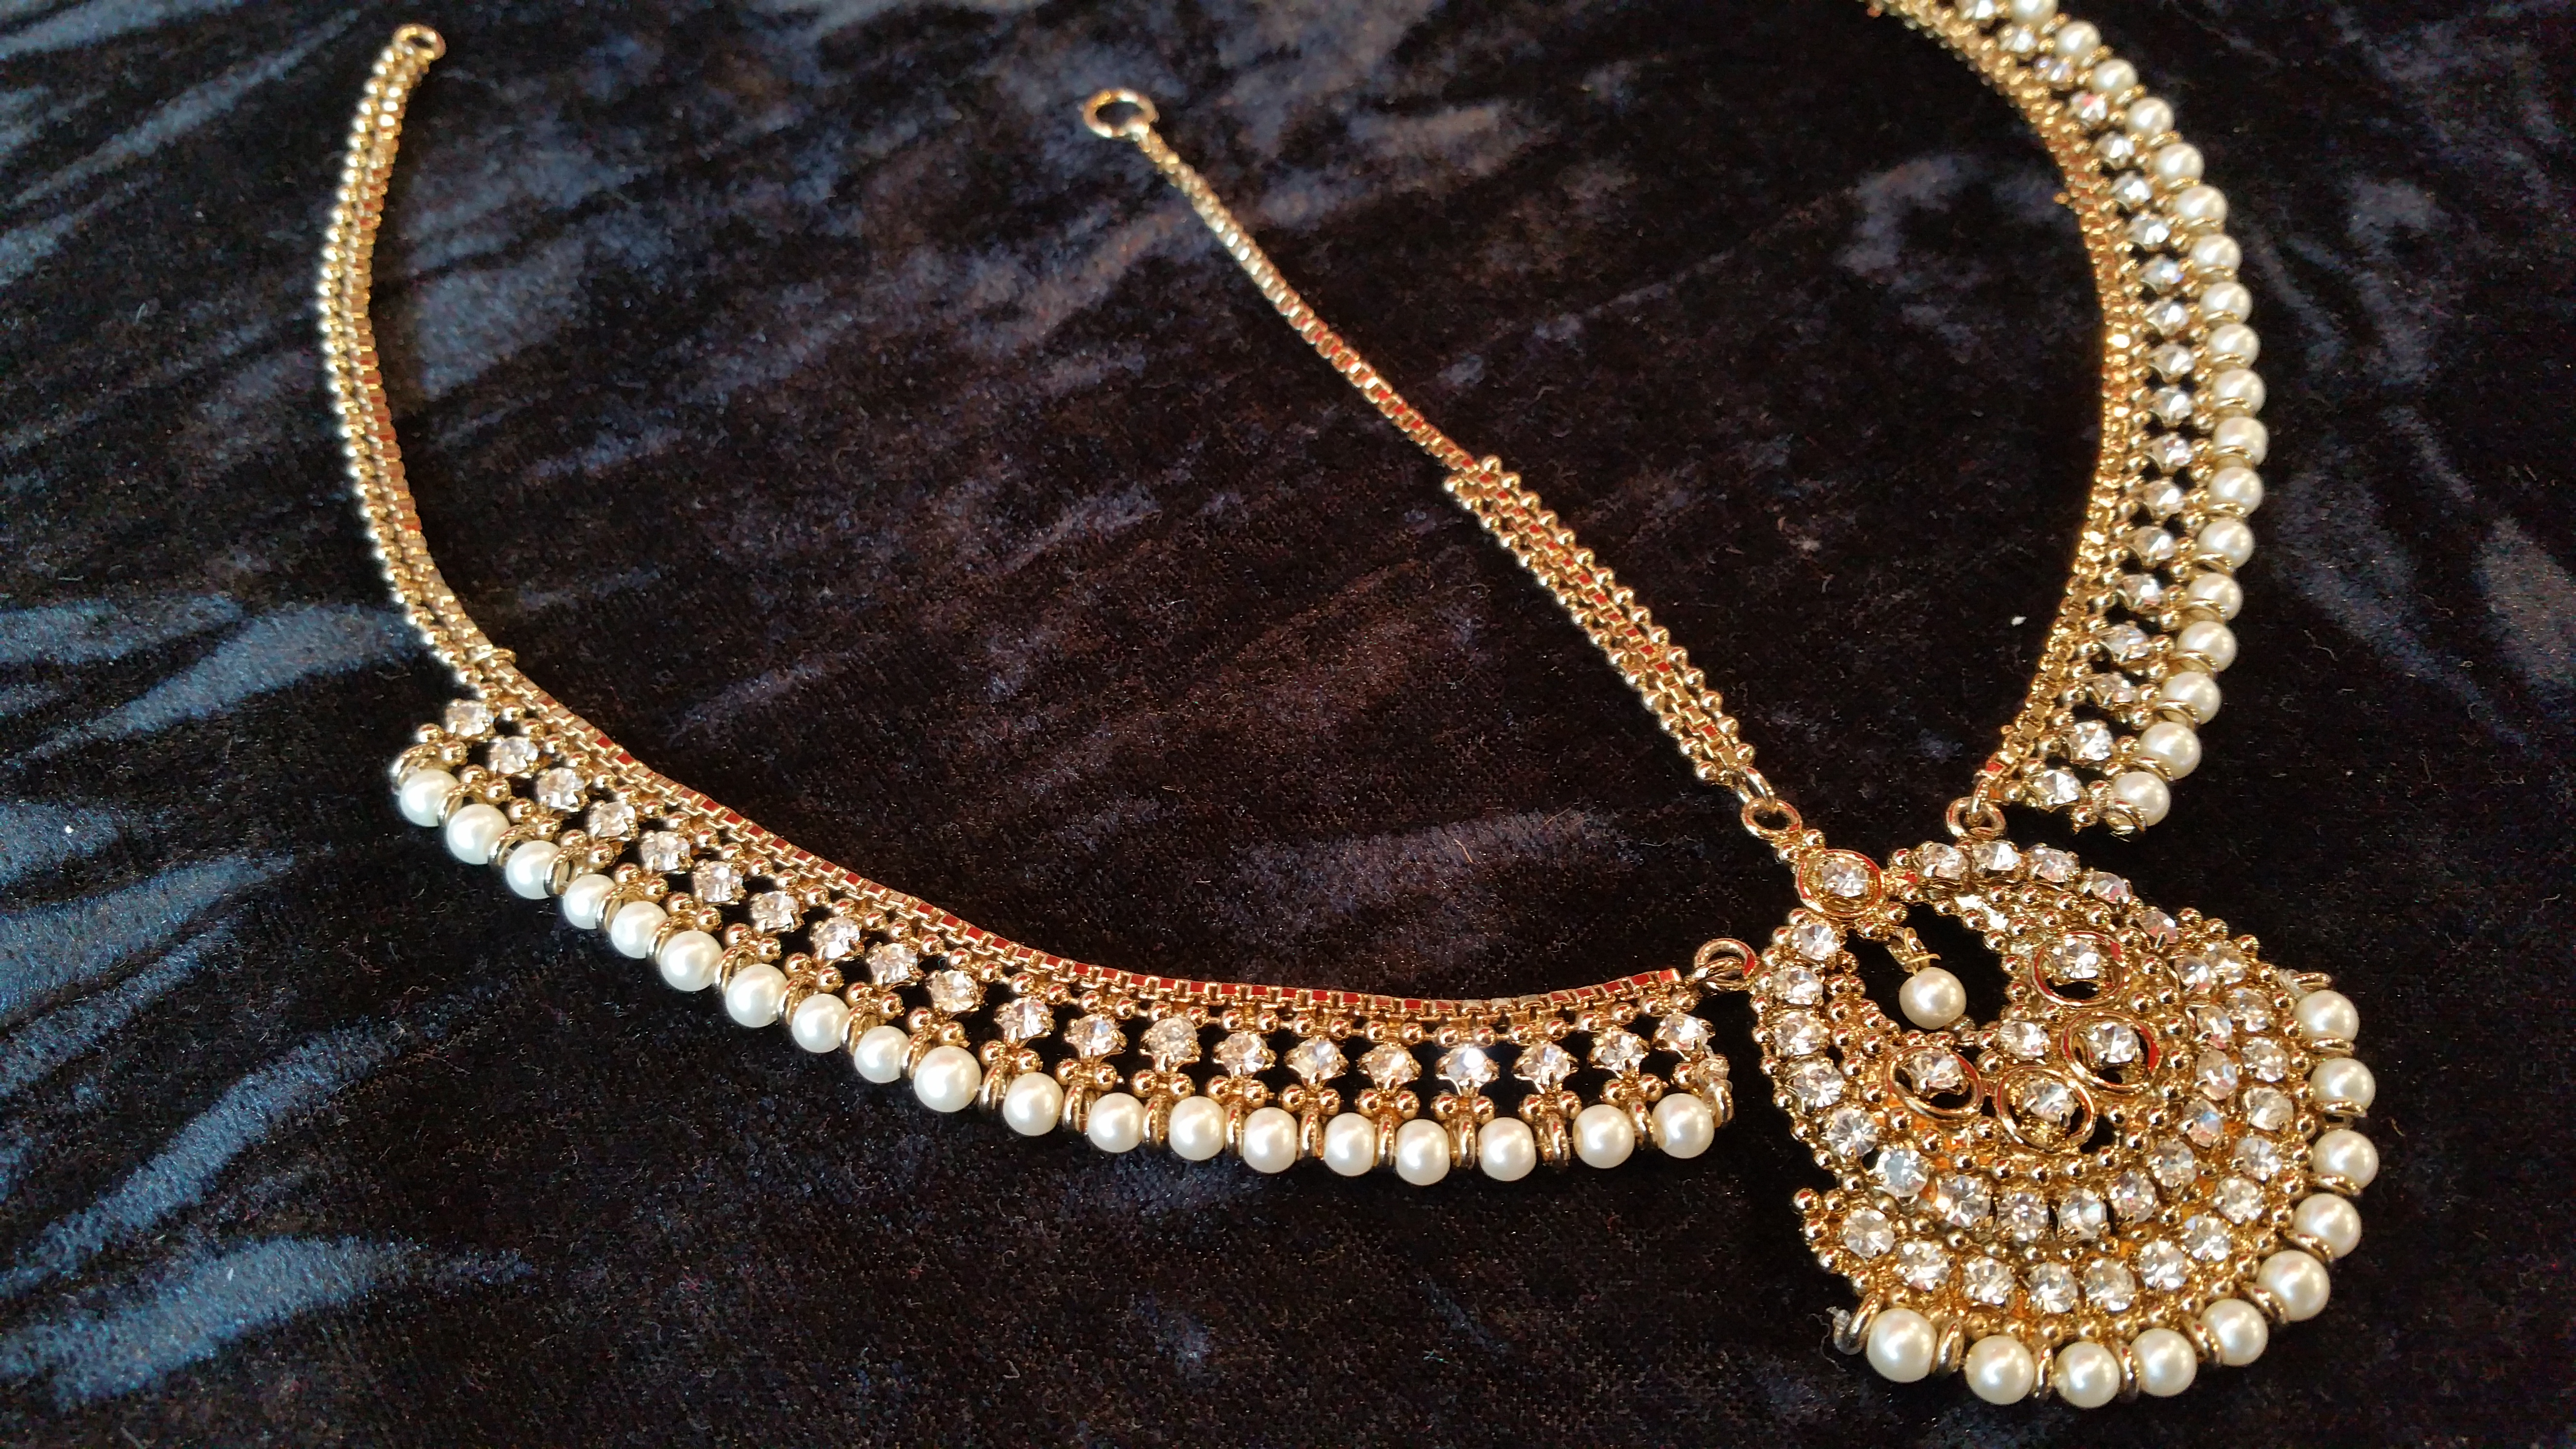 front matha pati - head jewellery - wholesale Pakistani jewellery - bespoke Pakistani jewellery